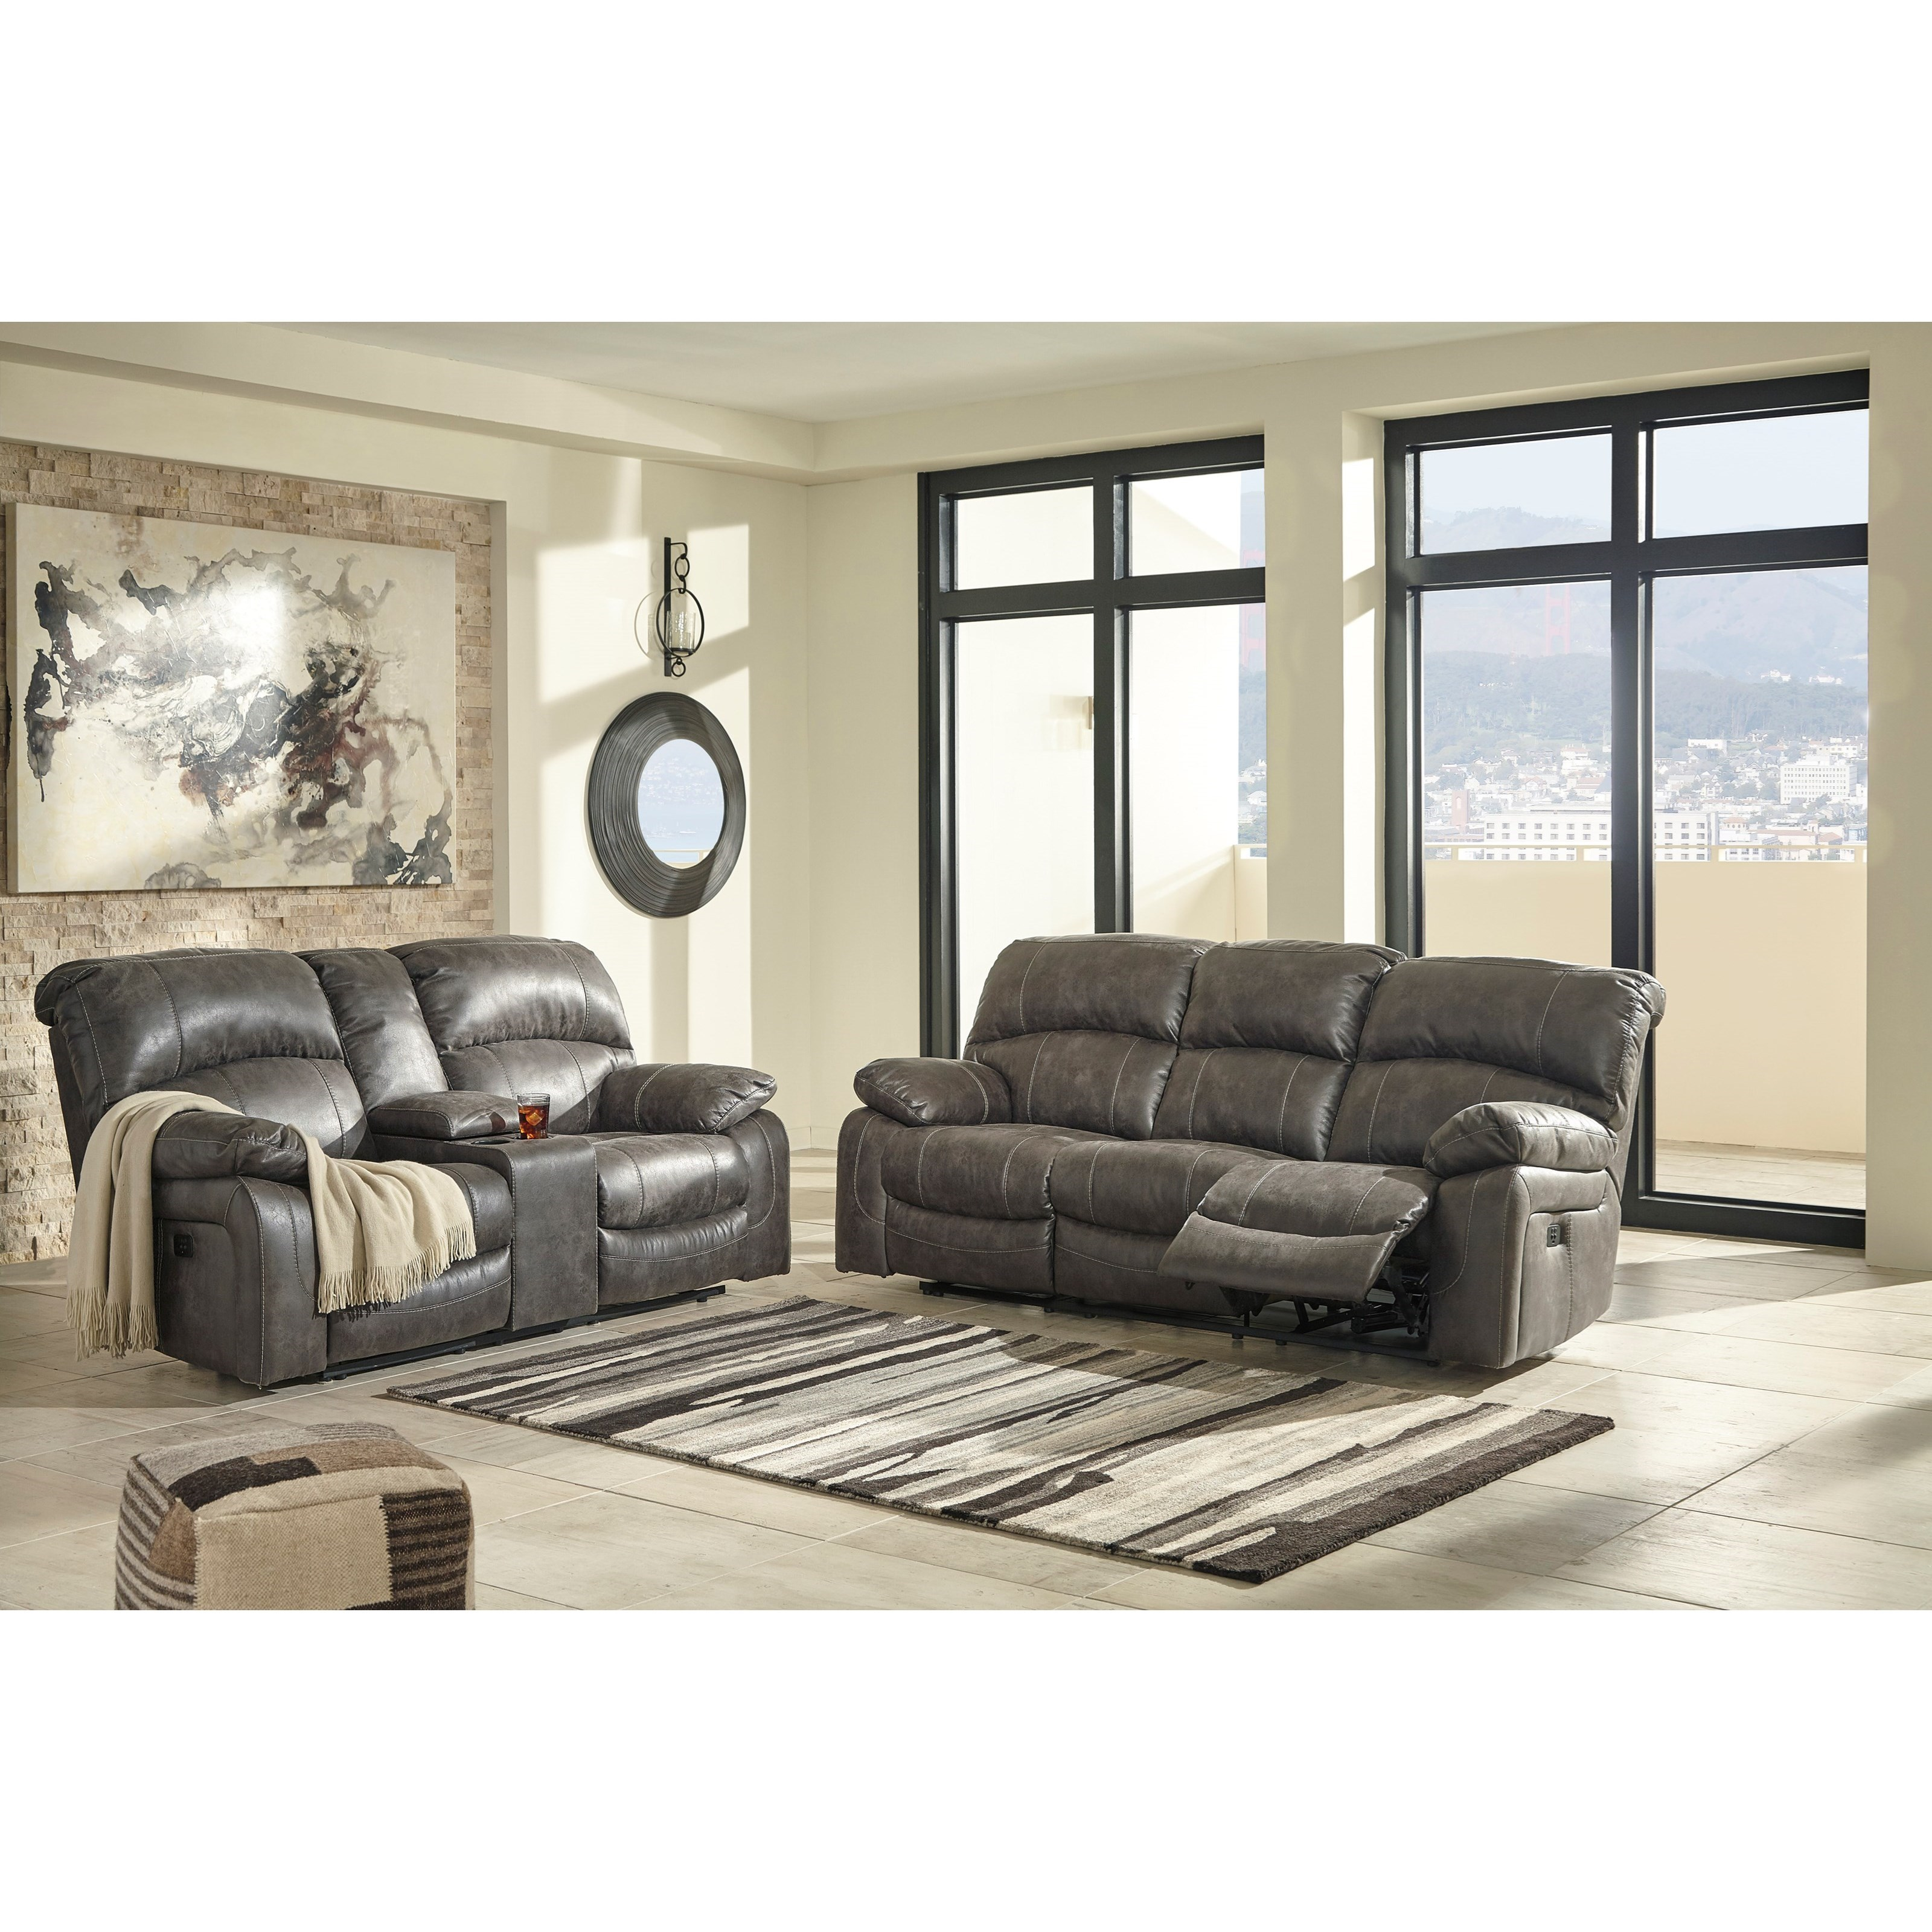 ... Design By Ashley Dunwell Reclining Living Room Group. Shown In: Steel  Dunwell Steel